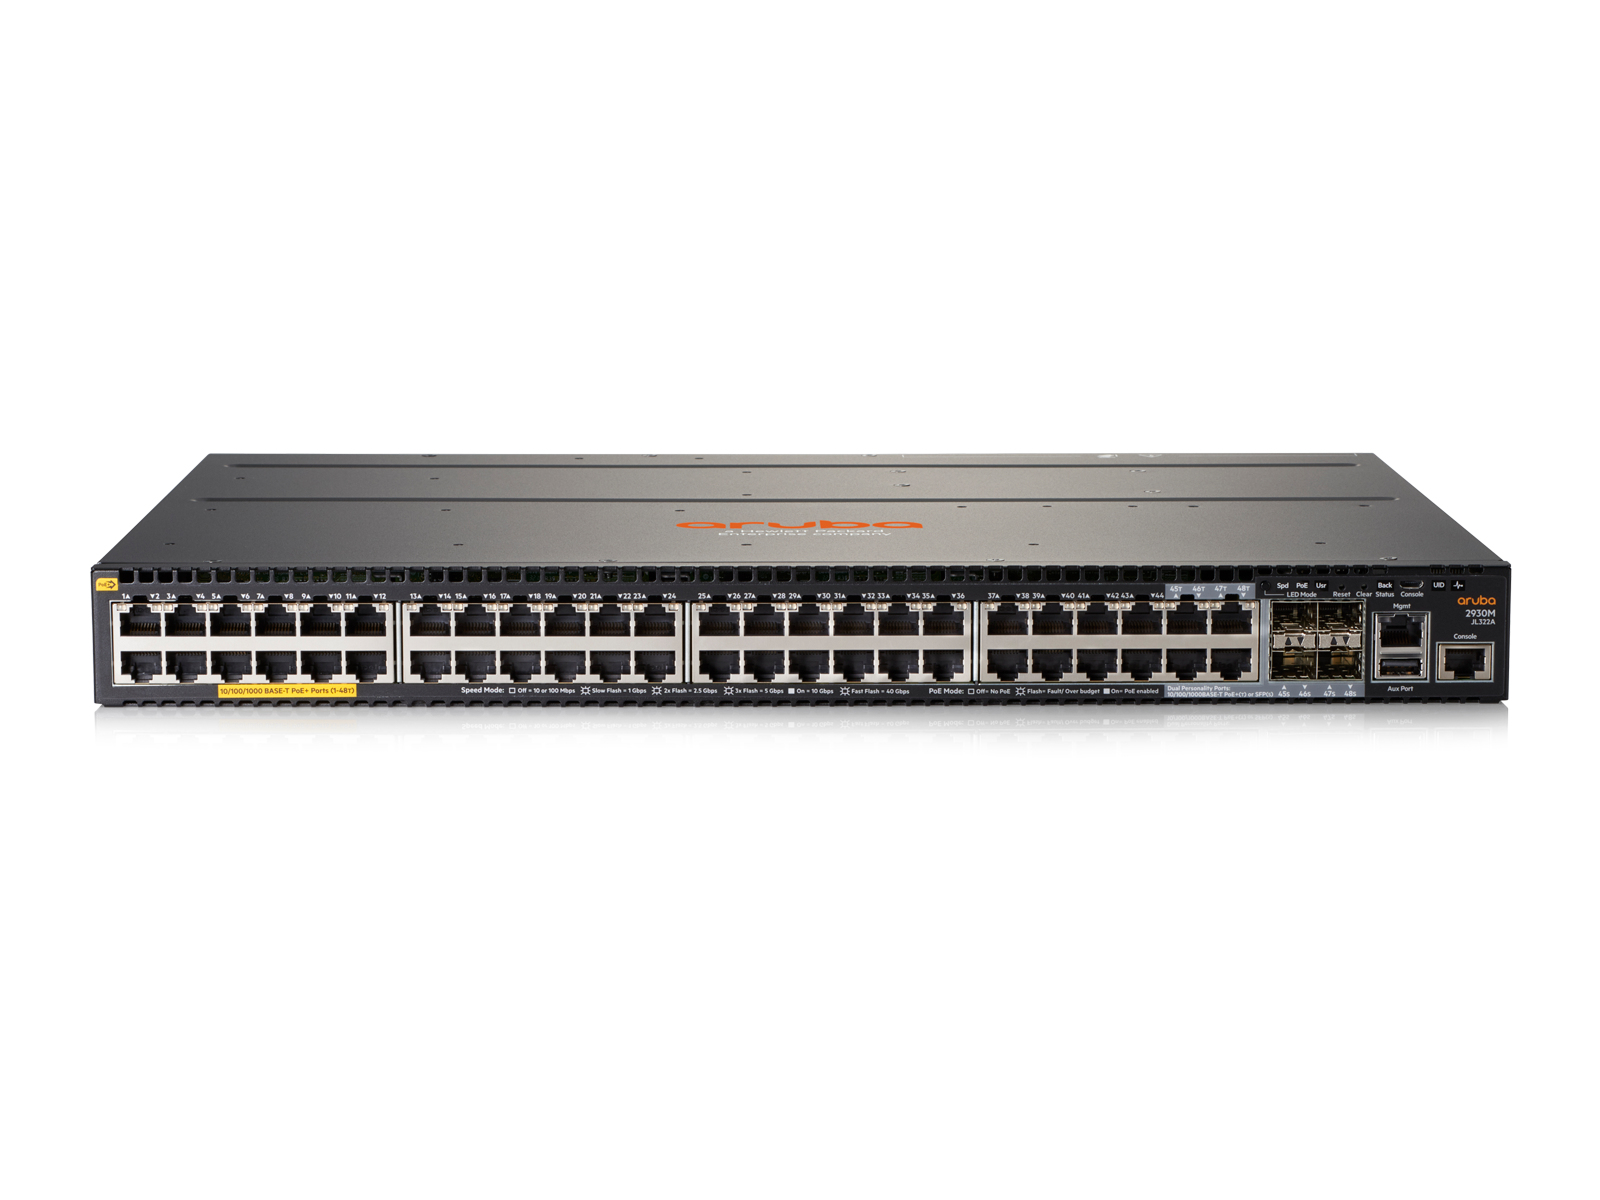 Hewlett Packard Enterprise Aruba 2930M 48G PoE+ 1-slot Managed L3 Gigabit Ethernet (10/100/1000) Grey 1U Power over Ethernet (PoE)